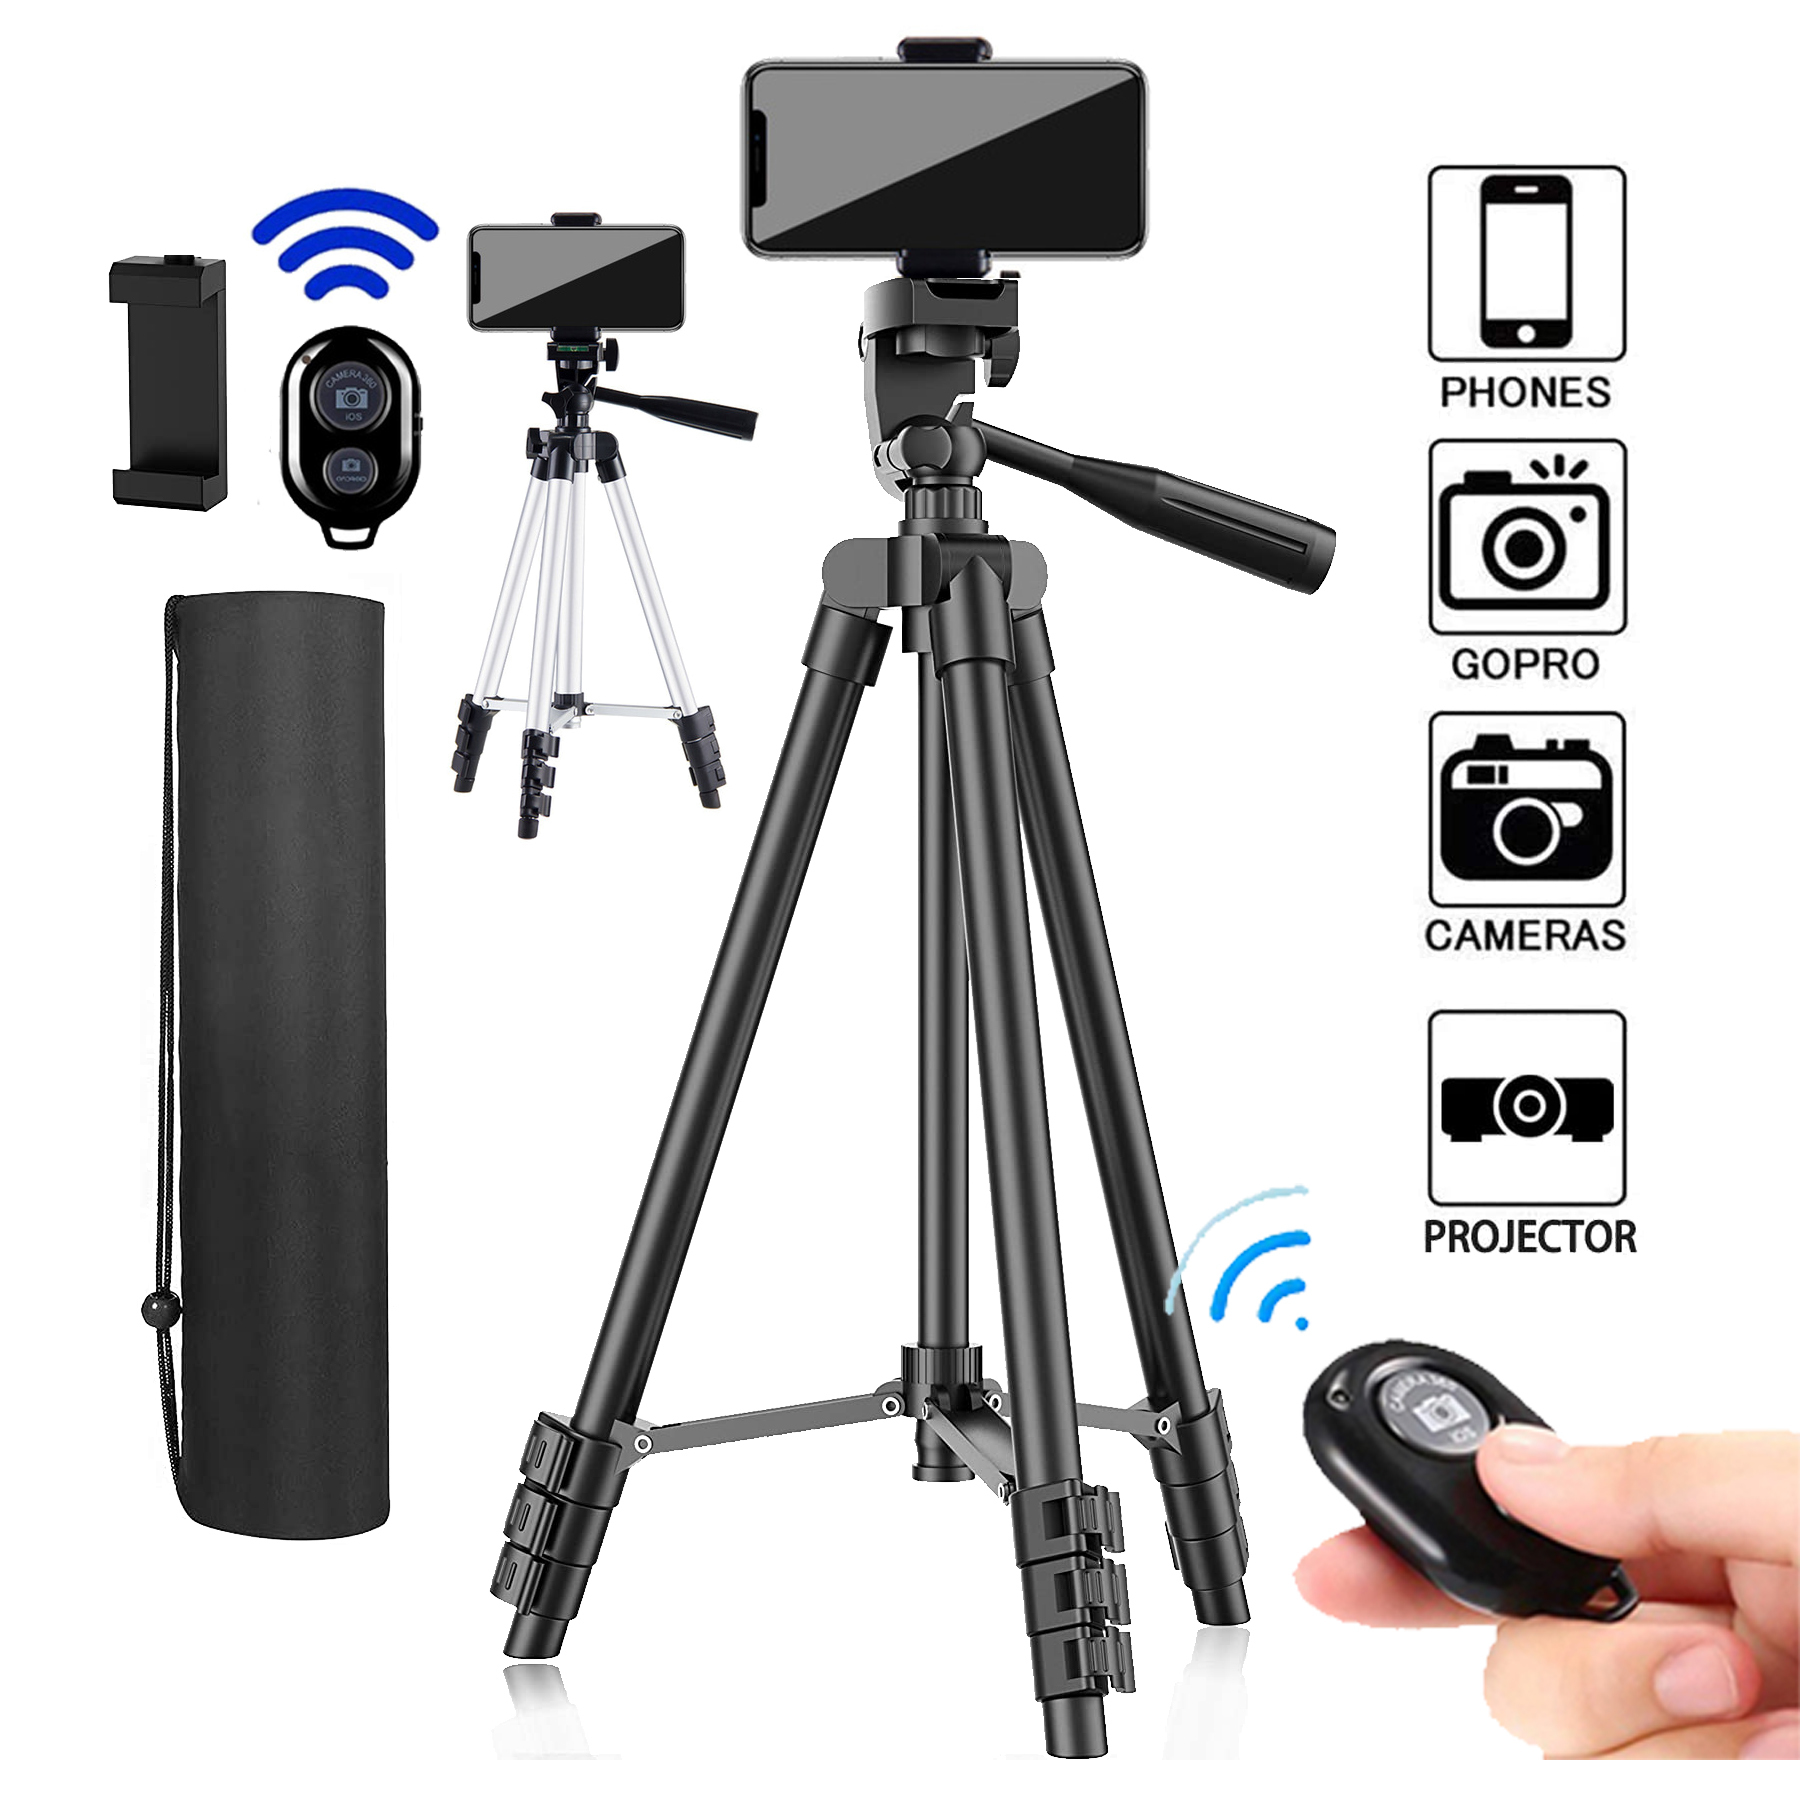 Flexible Tripod Extendable Stand Camera Cell-Phone-Mount Gopro Lightweight DSLR Bluetooth